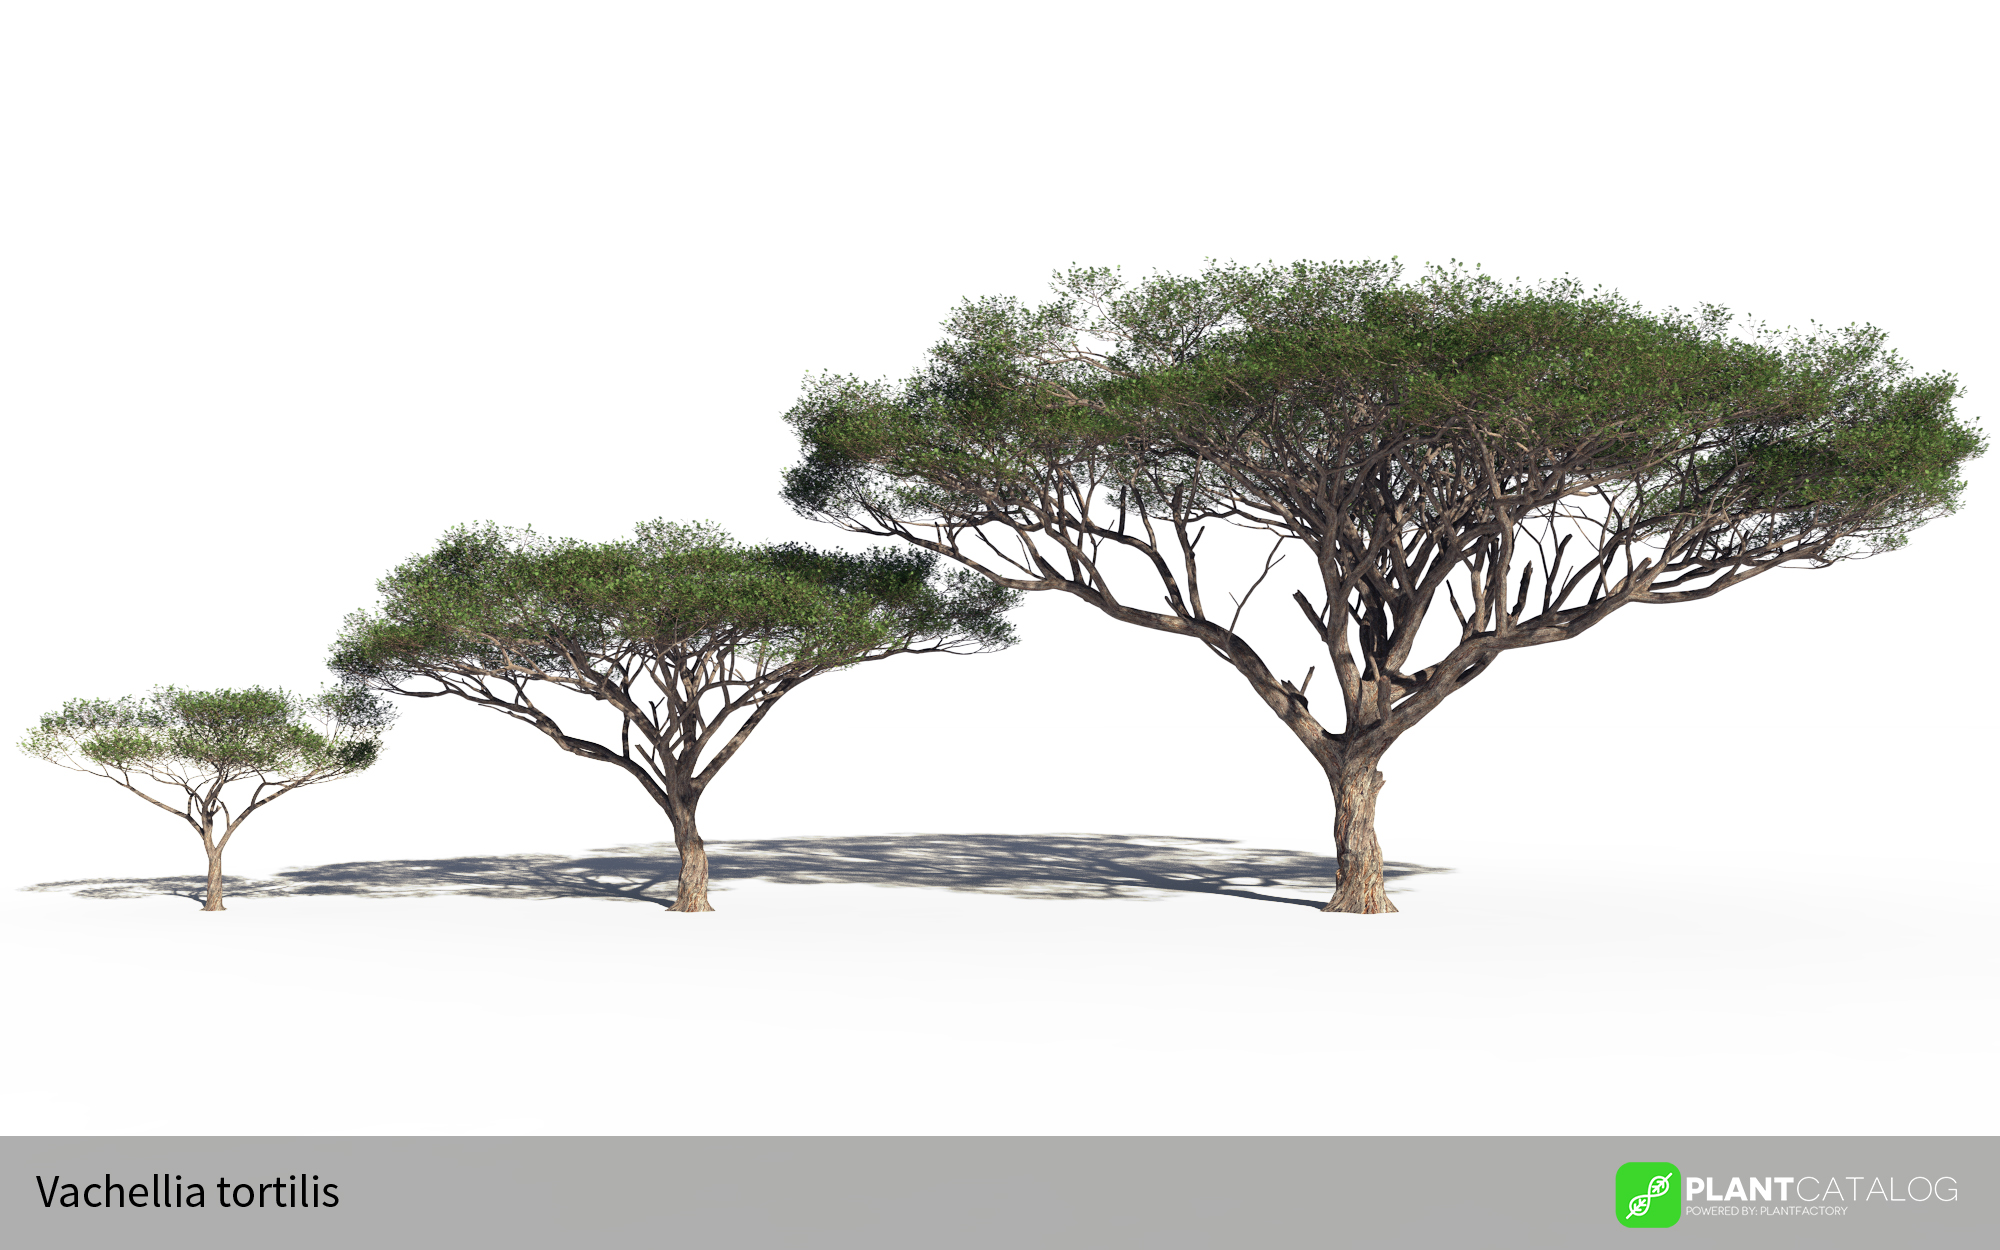 3D model of the Umbrella acacia - Vachellia tortilis - from the PlantCatalog, rendered in VUE